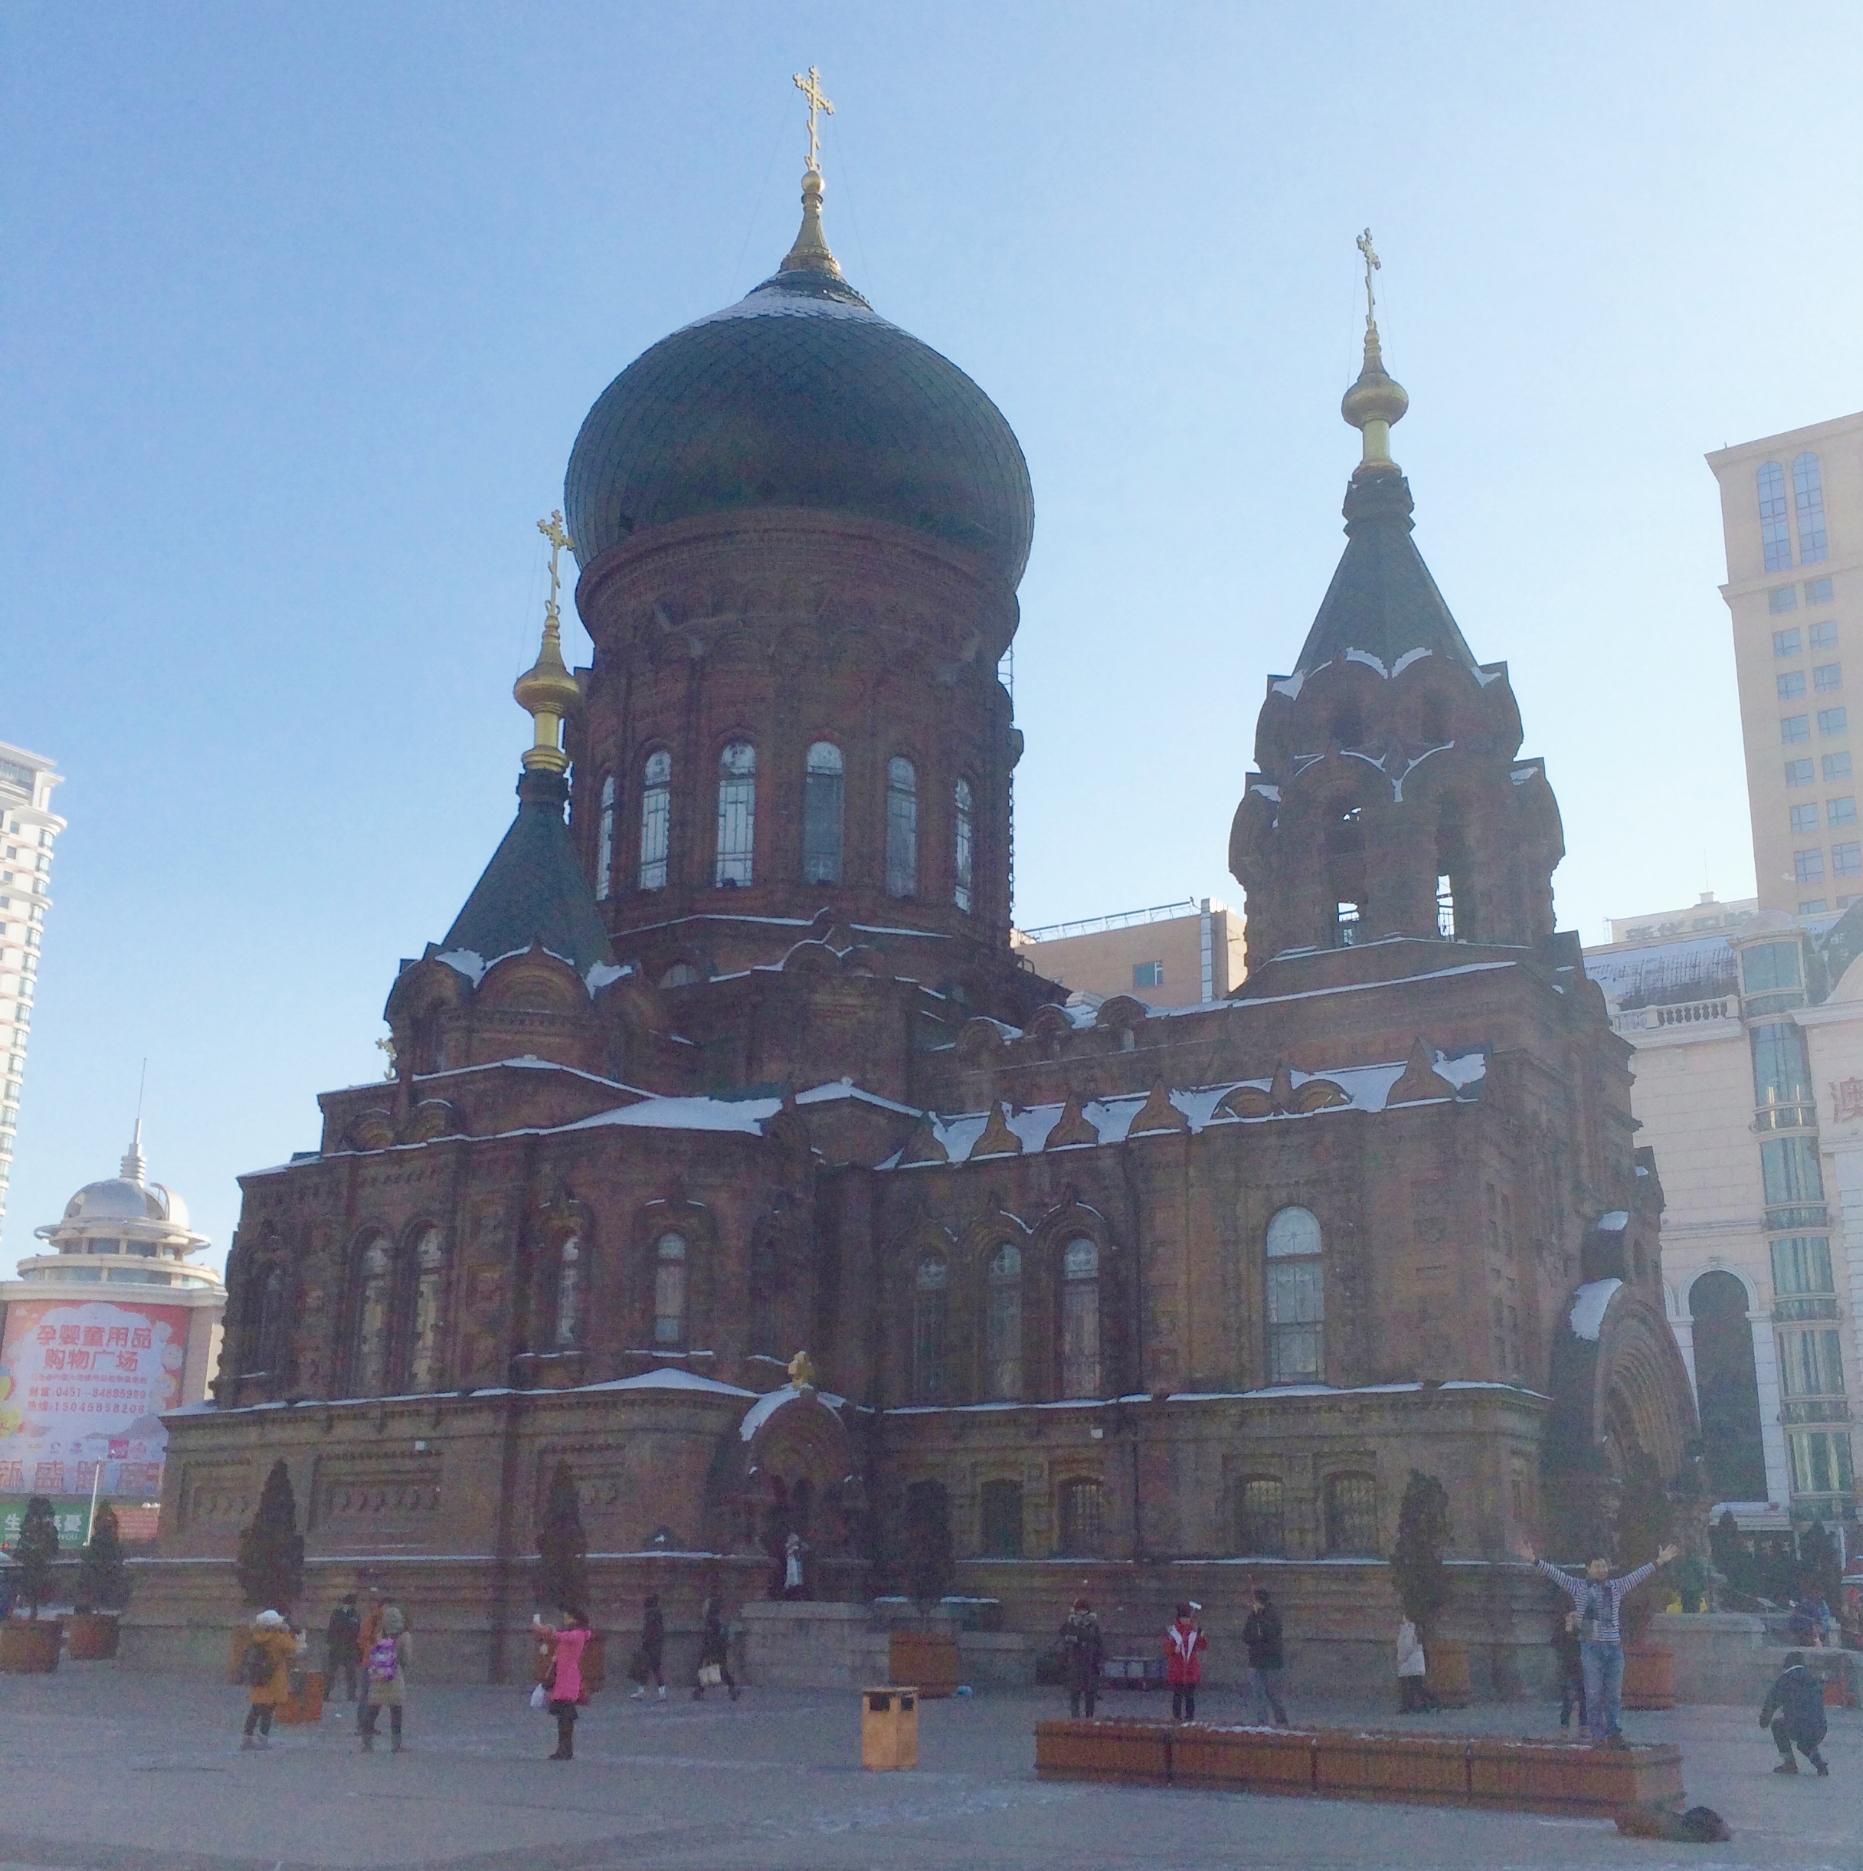 Saint Sophia in Harbin, a former Russian Orthodox Cathedral, now a museum